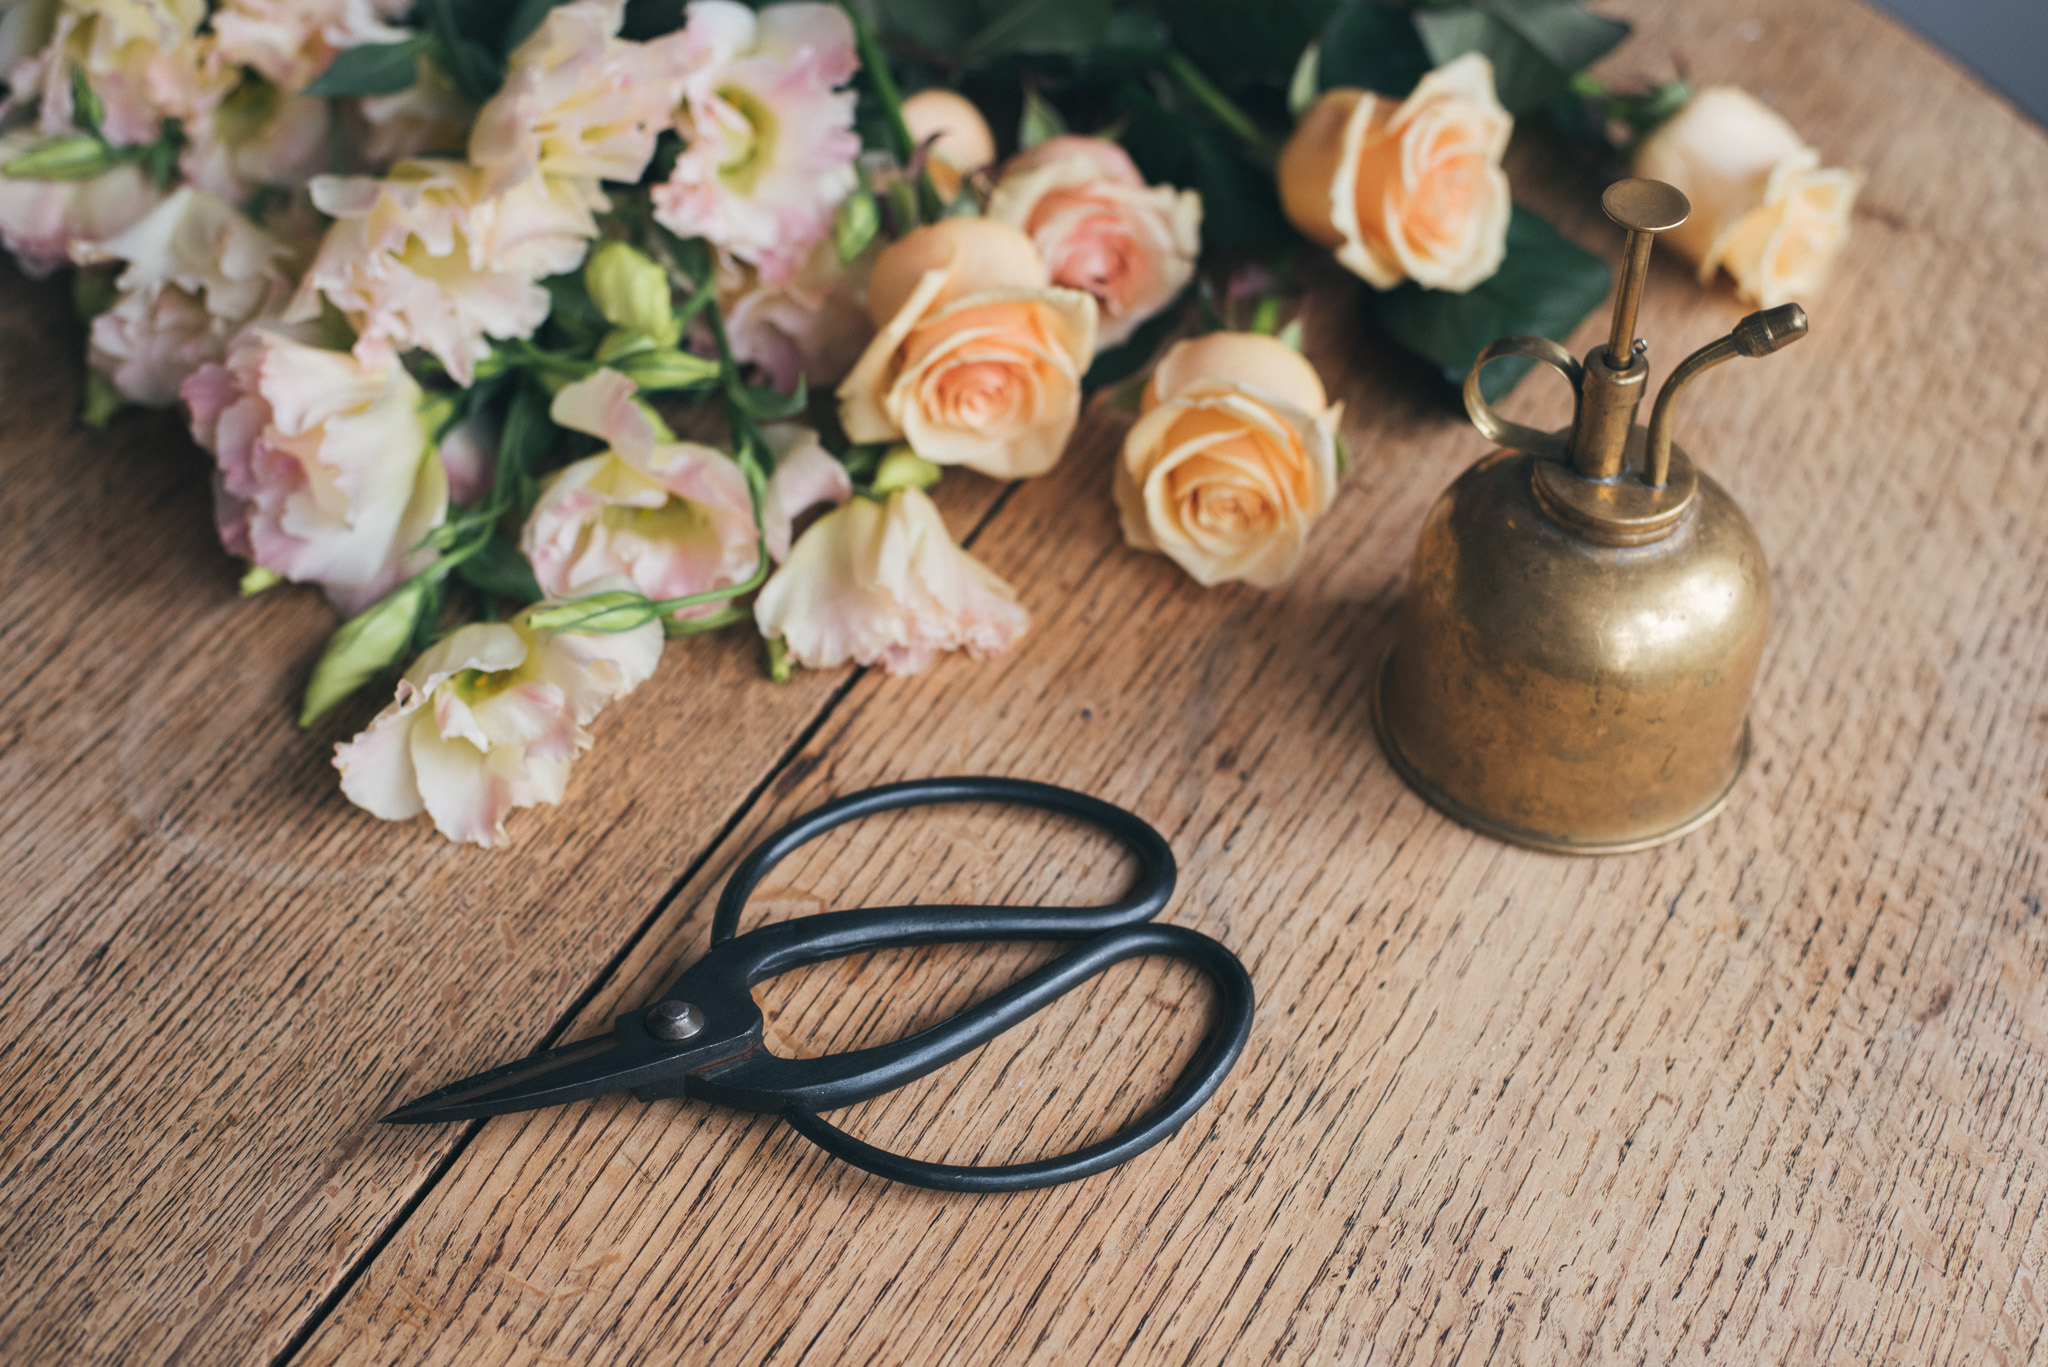 Want to learn how to make your cut flowers last longer? - There's a blog post for you right here.